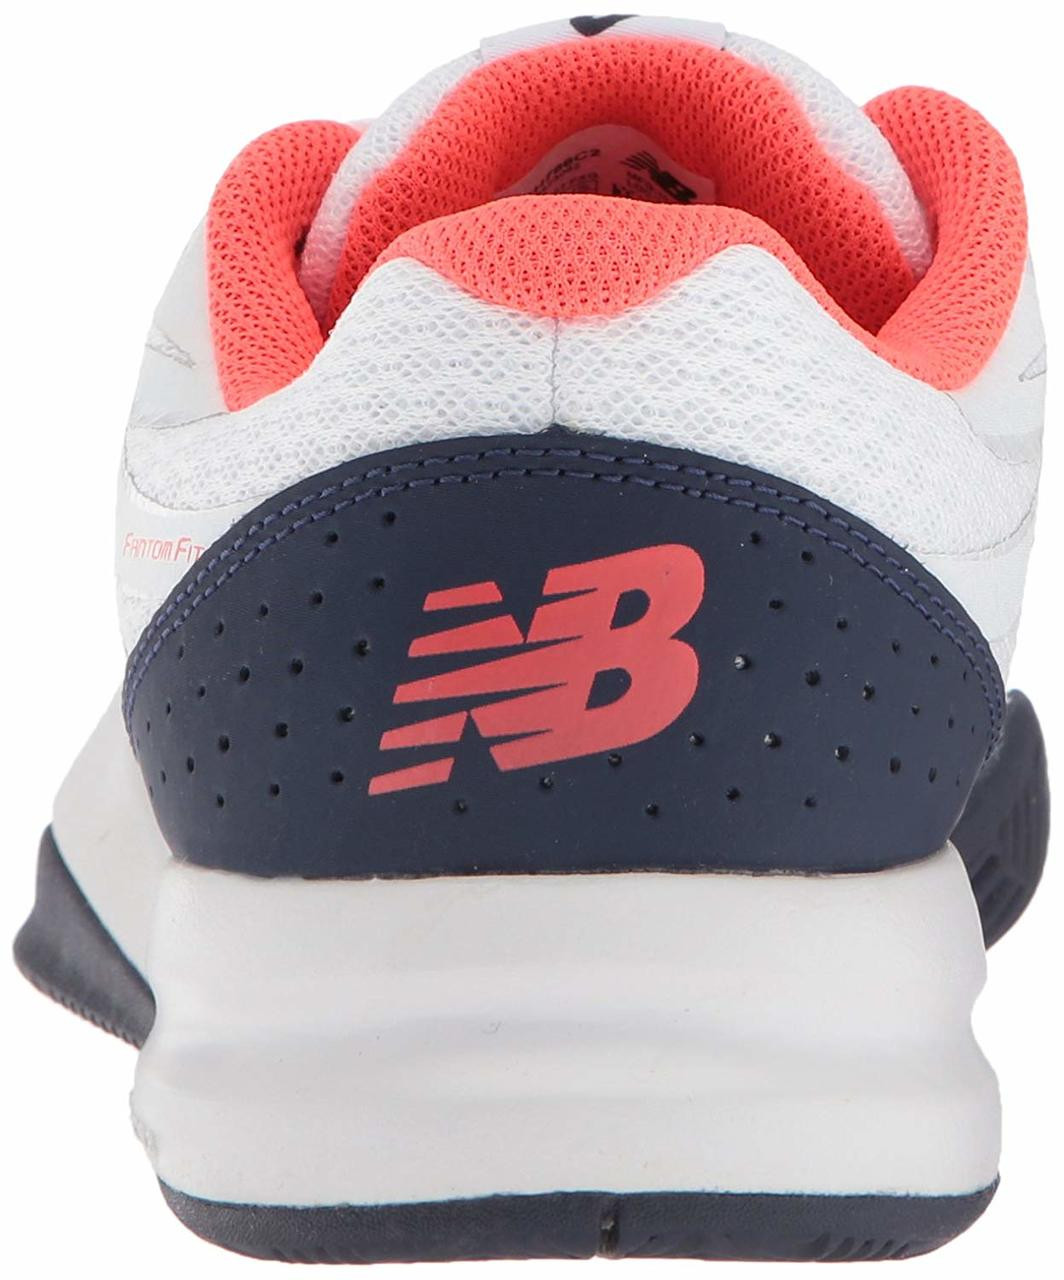 ac3af9591850d New Balance Womens wch786c2 Low Top Lace Up Running Sneaker~pp-c7da0b00